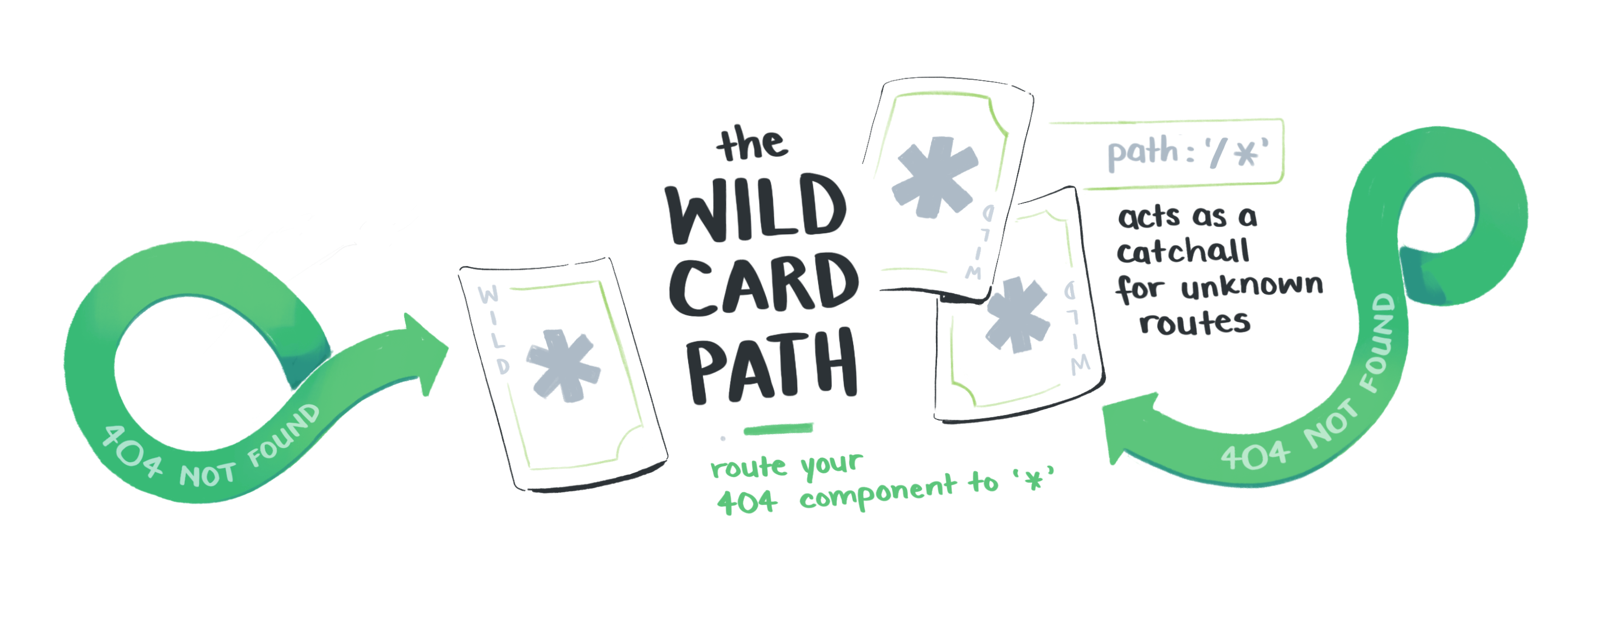 The wild card path acts as a cacthall for unknown routes